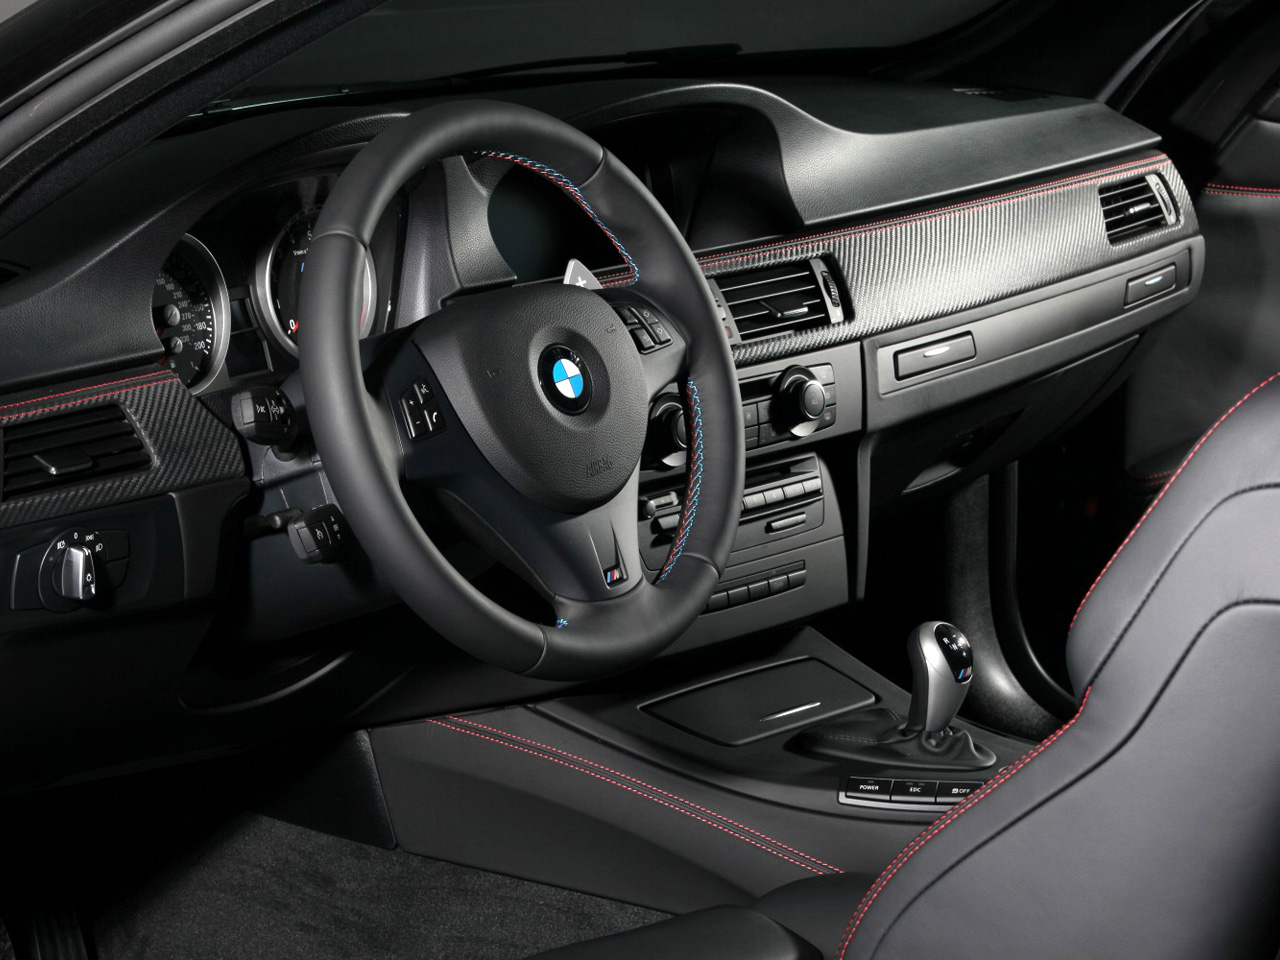 Car in pictures - car photo gallery » BMW M3 Coupe Frozen ...